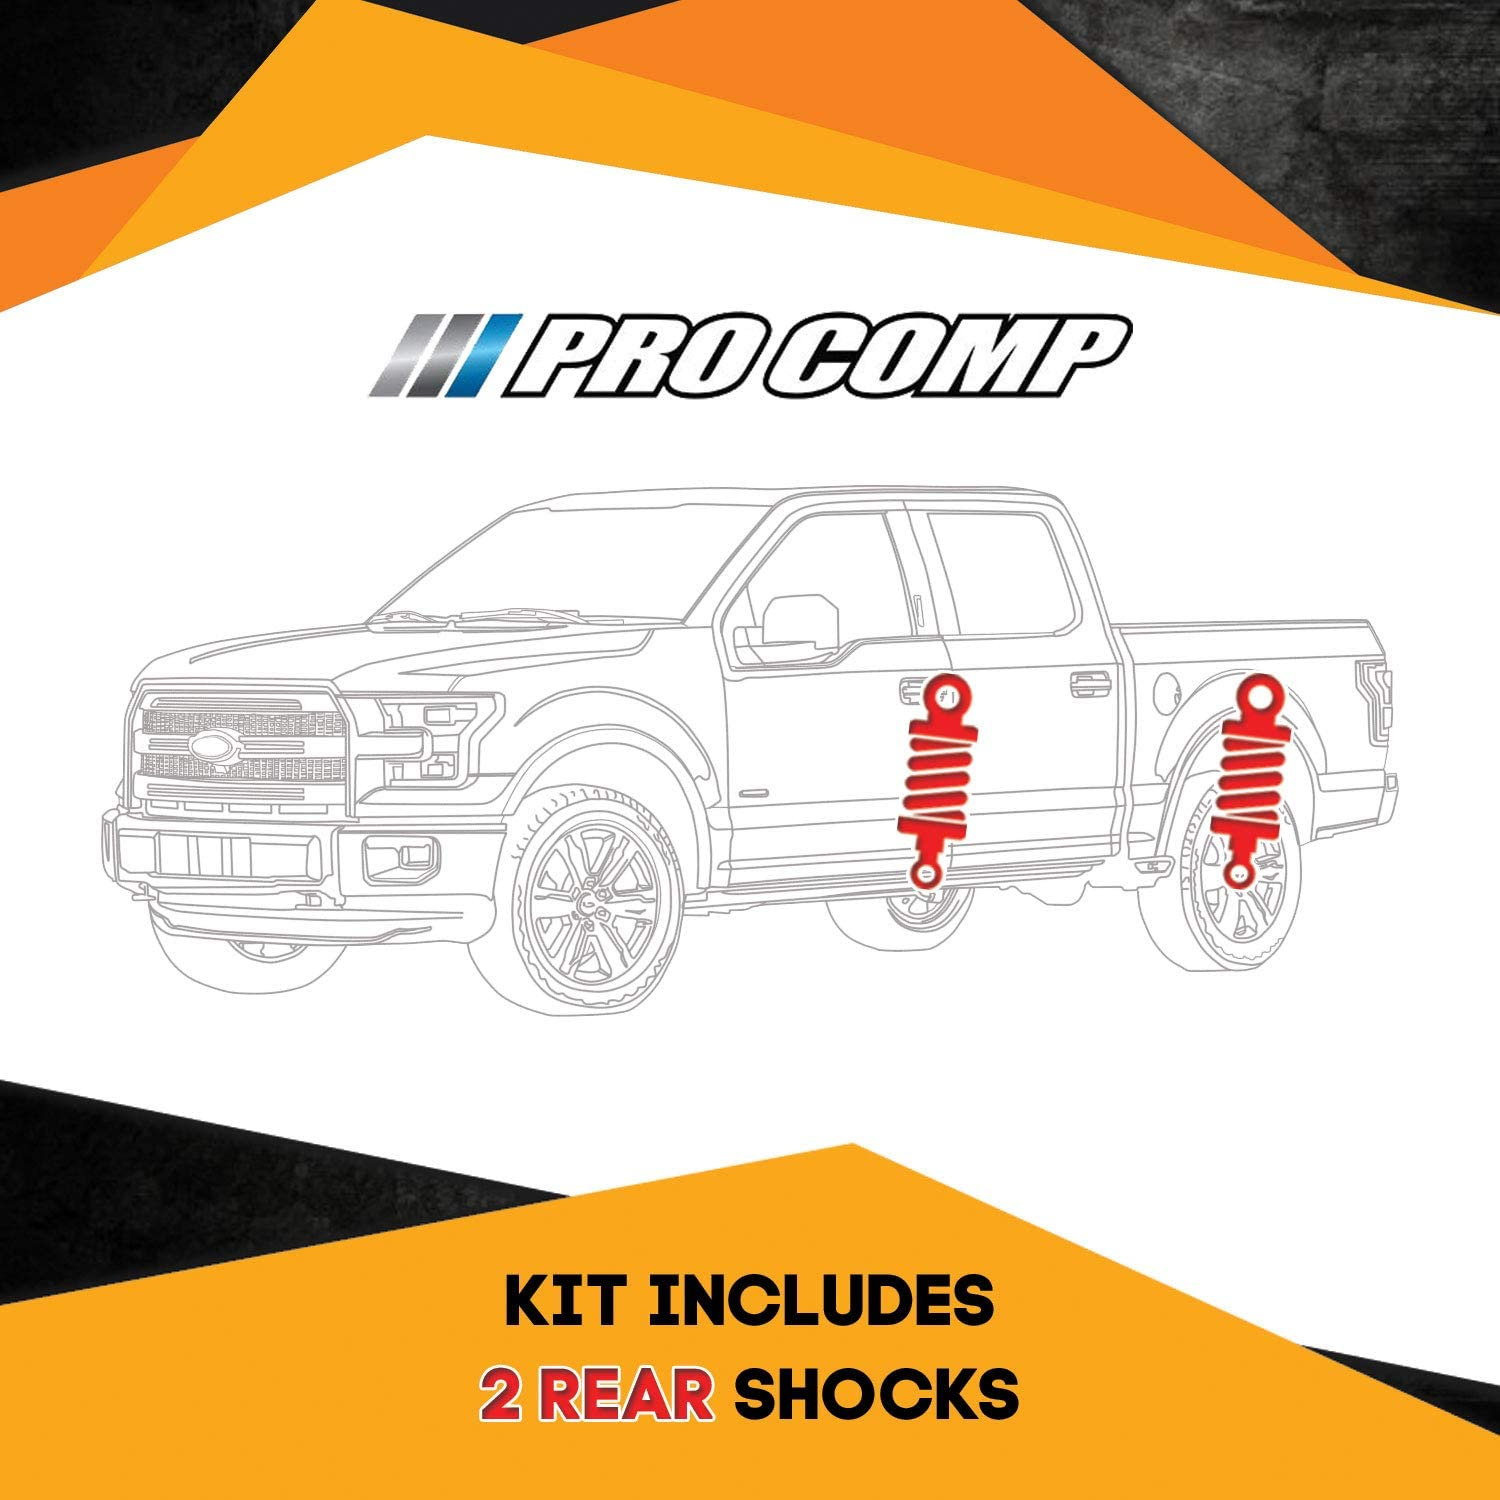 Pro Comp ES9000 2 Rear Shocks Kit for GMC Sierra 73-87 4WD 5-7 inch Lift Ride Twin-tube replacement Gas Charged Shock absorbers